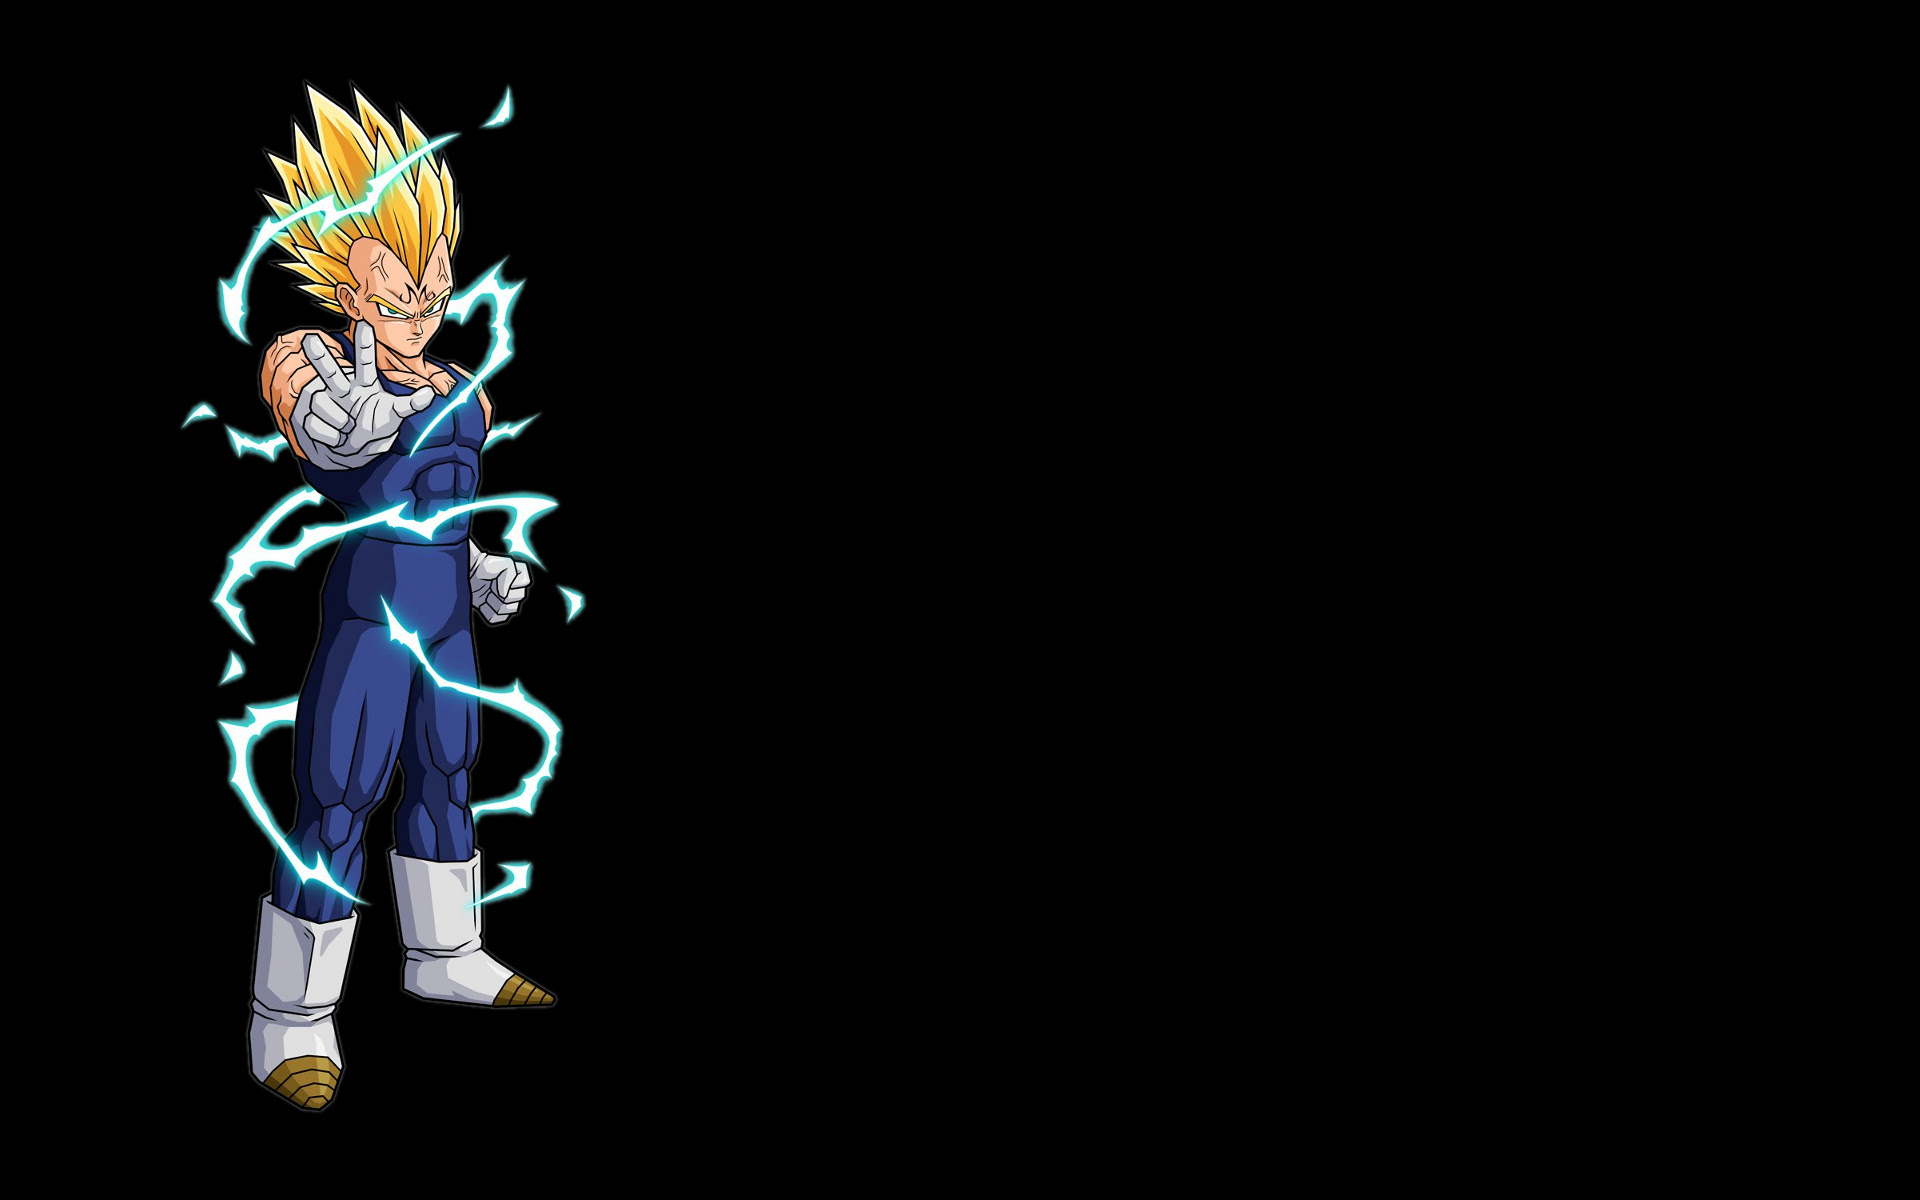 Vegeta Wallpapers High Quality | Download Free